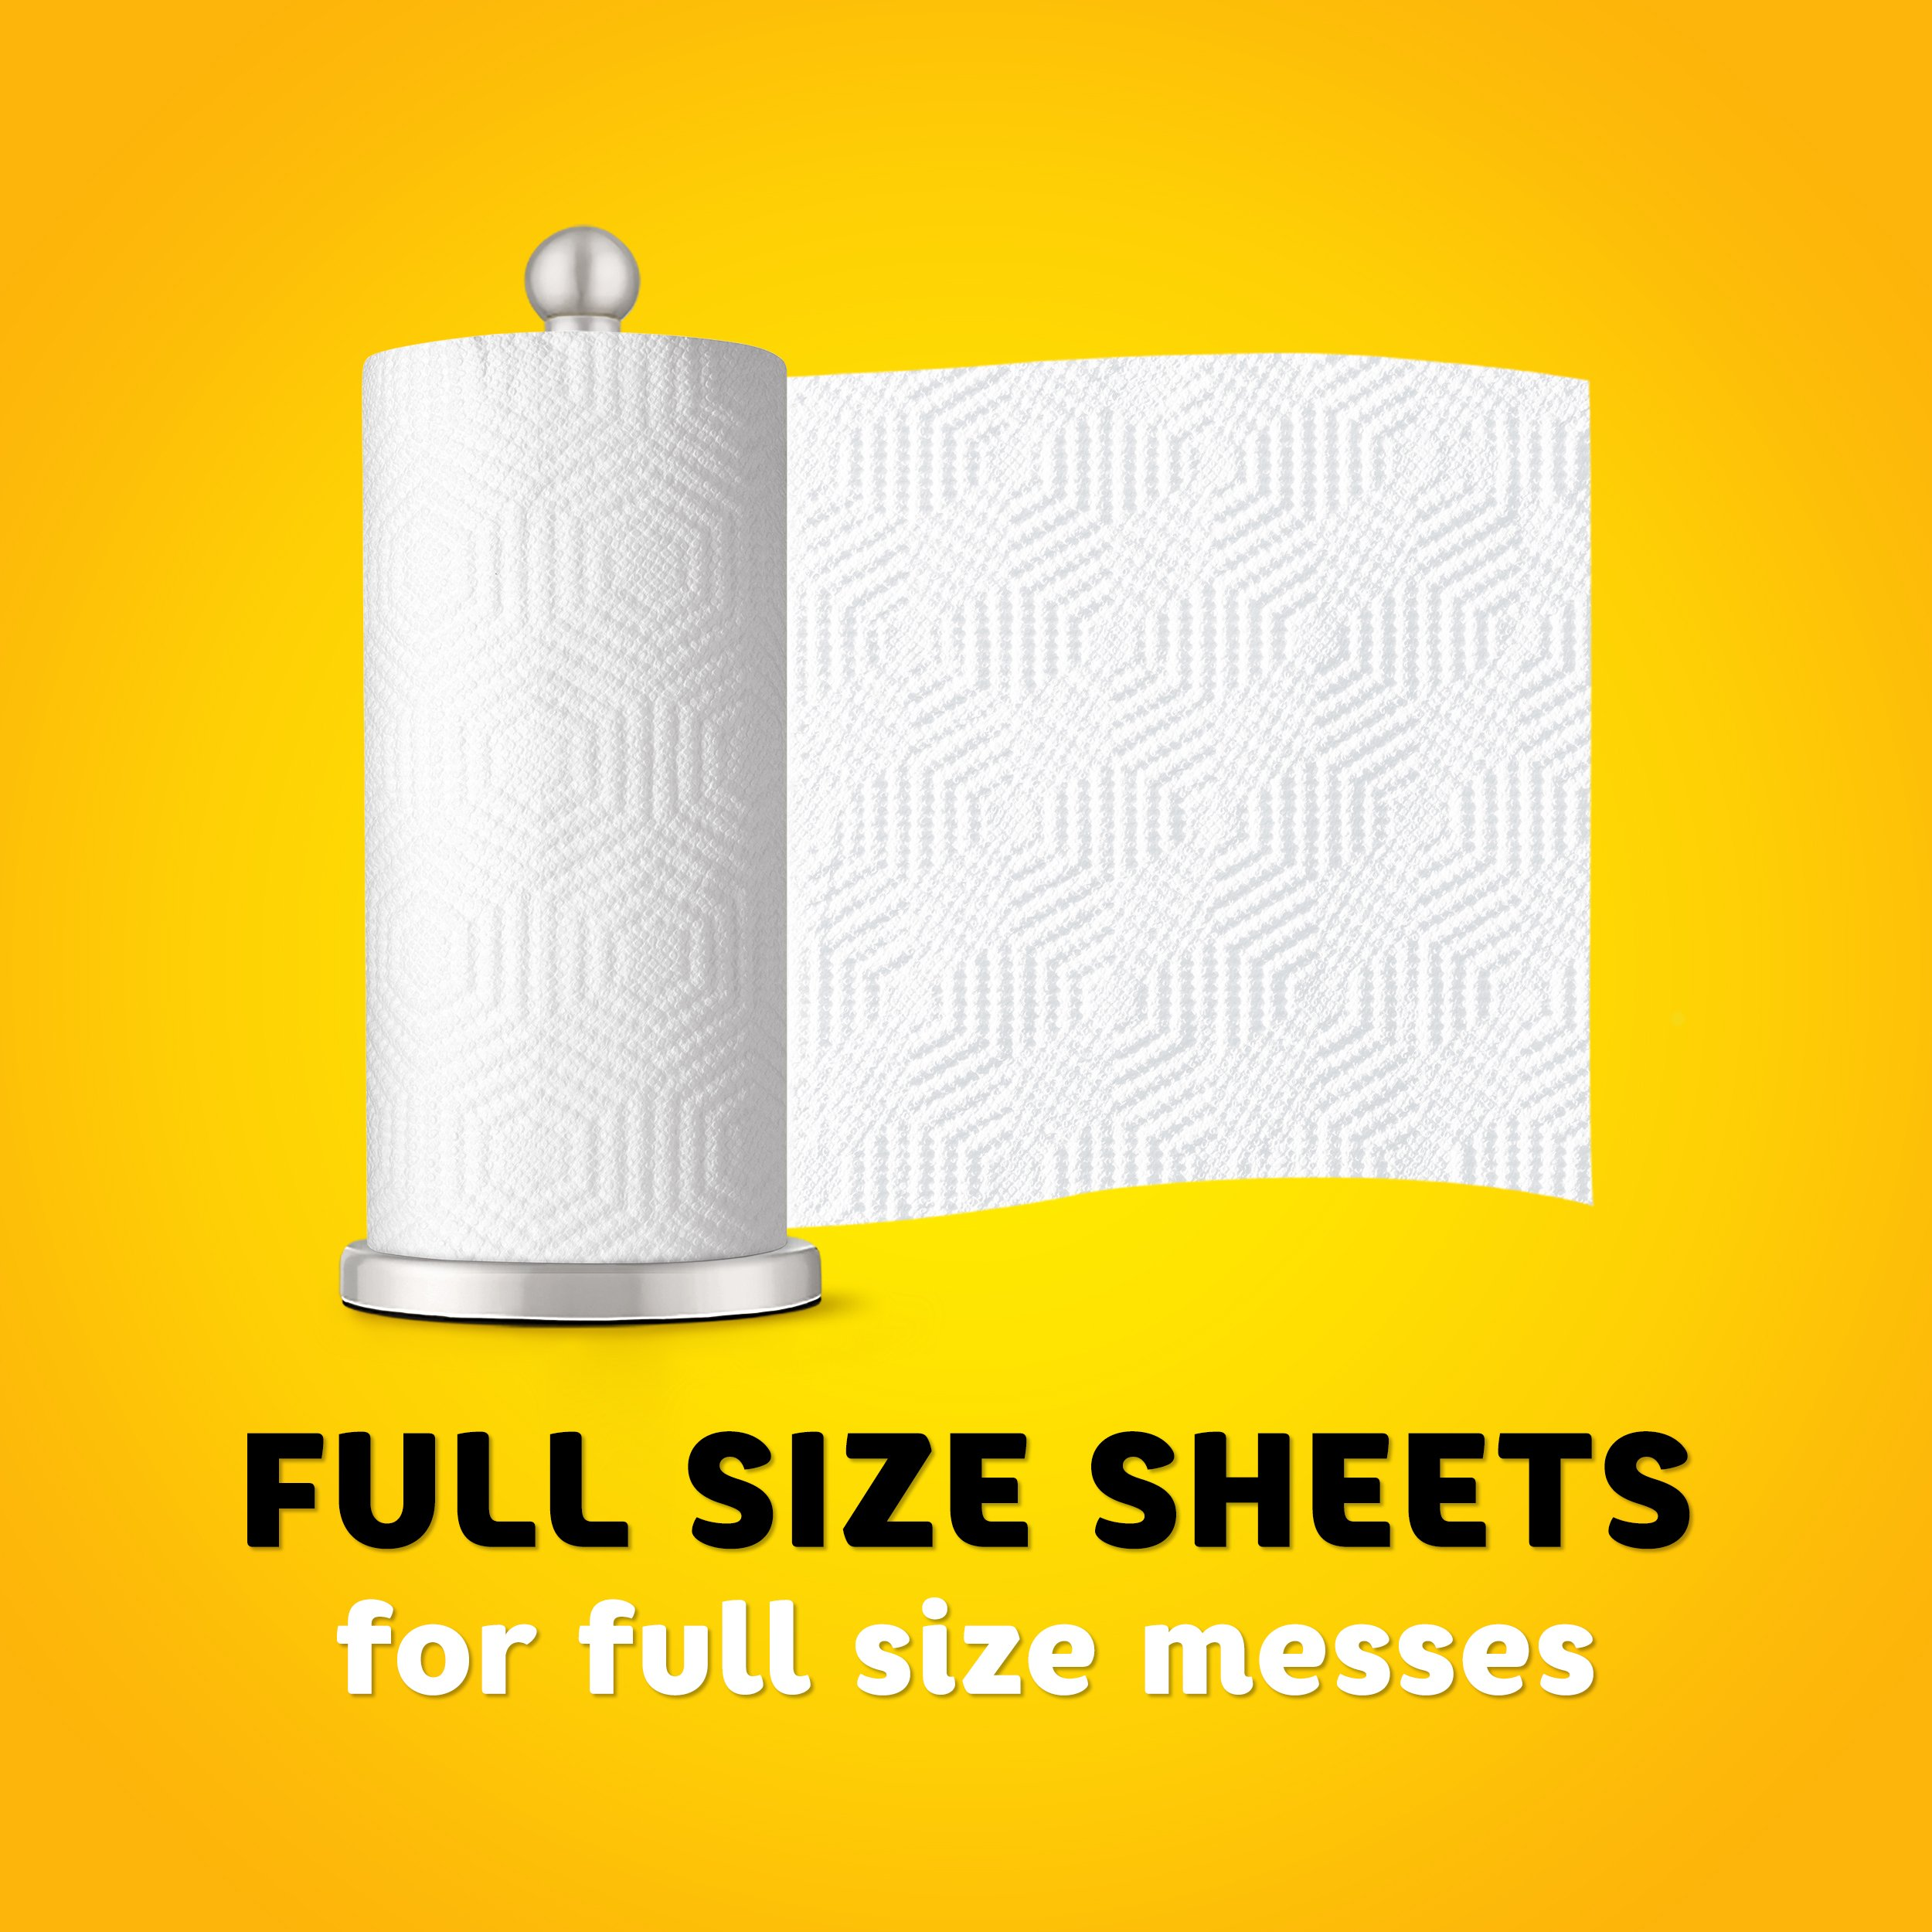 Bounty Essentials Full Sheet Paper Towels, 24 Large Rolls by Bounty (Image #4)